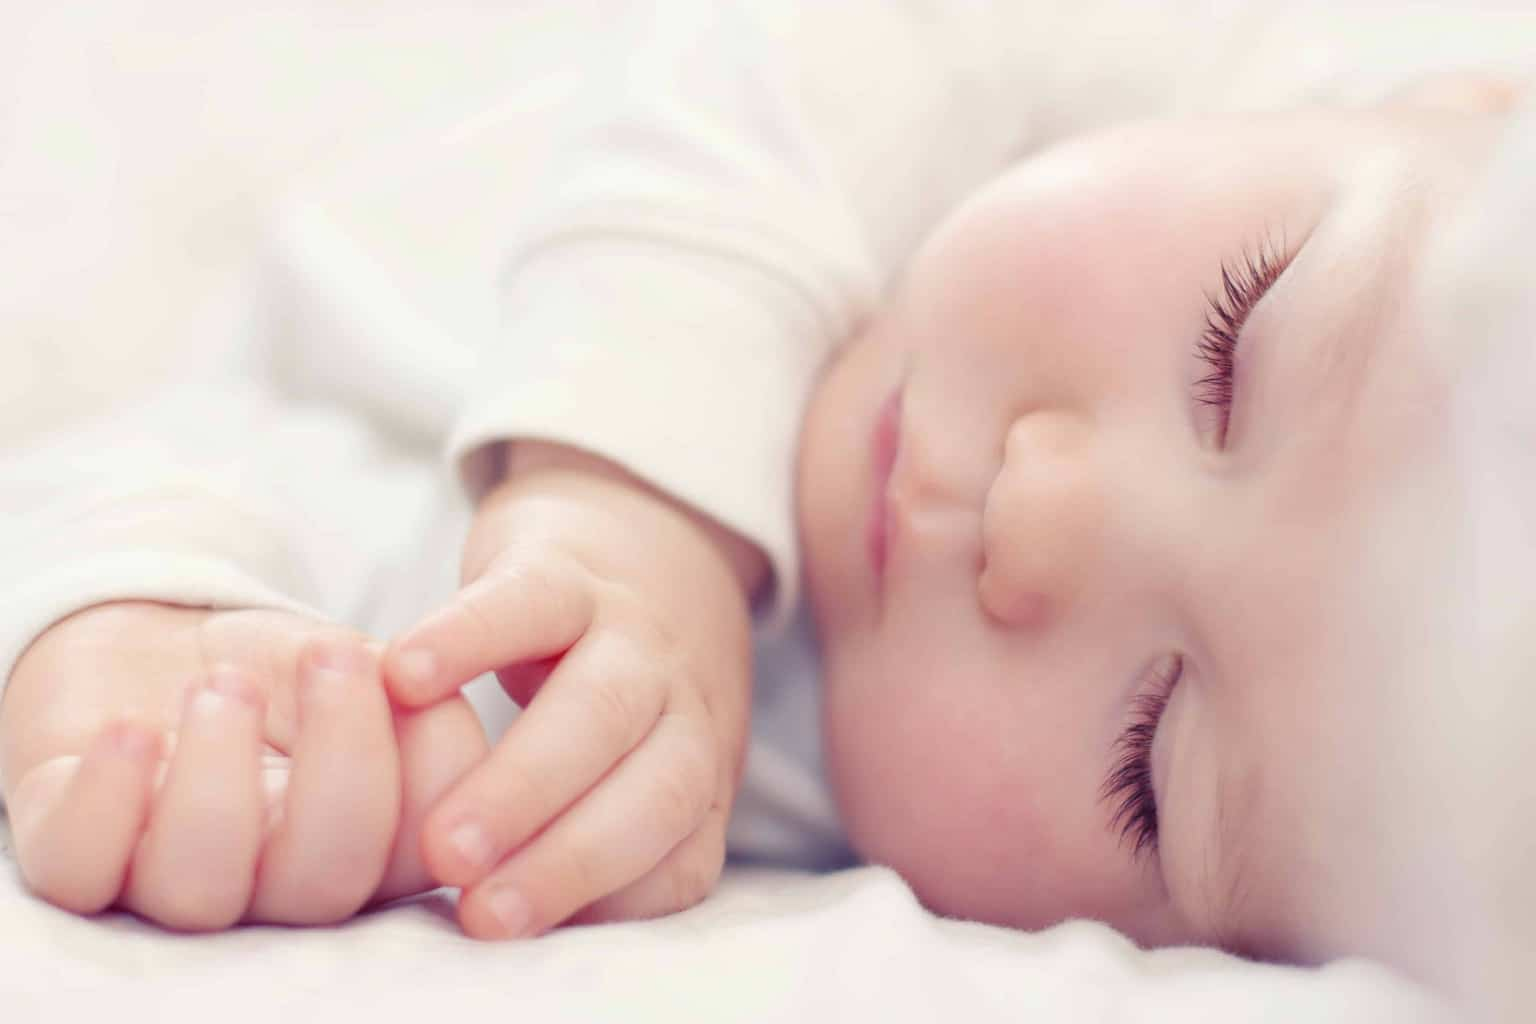 Can You Help Your Breastfed Baby Sleep Better? Helping You and Your Child Sleep - Sleep Help from The Baby Sleep Site®